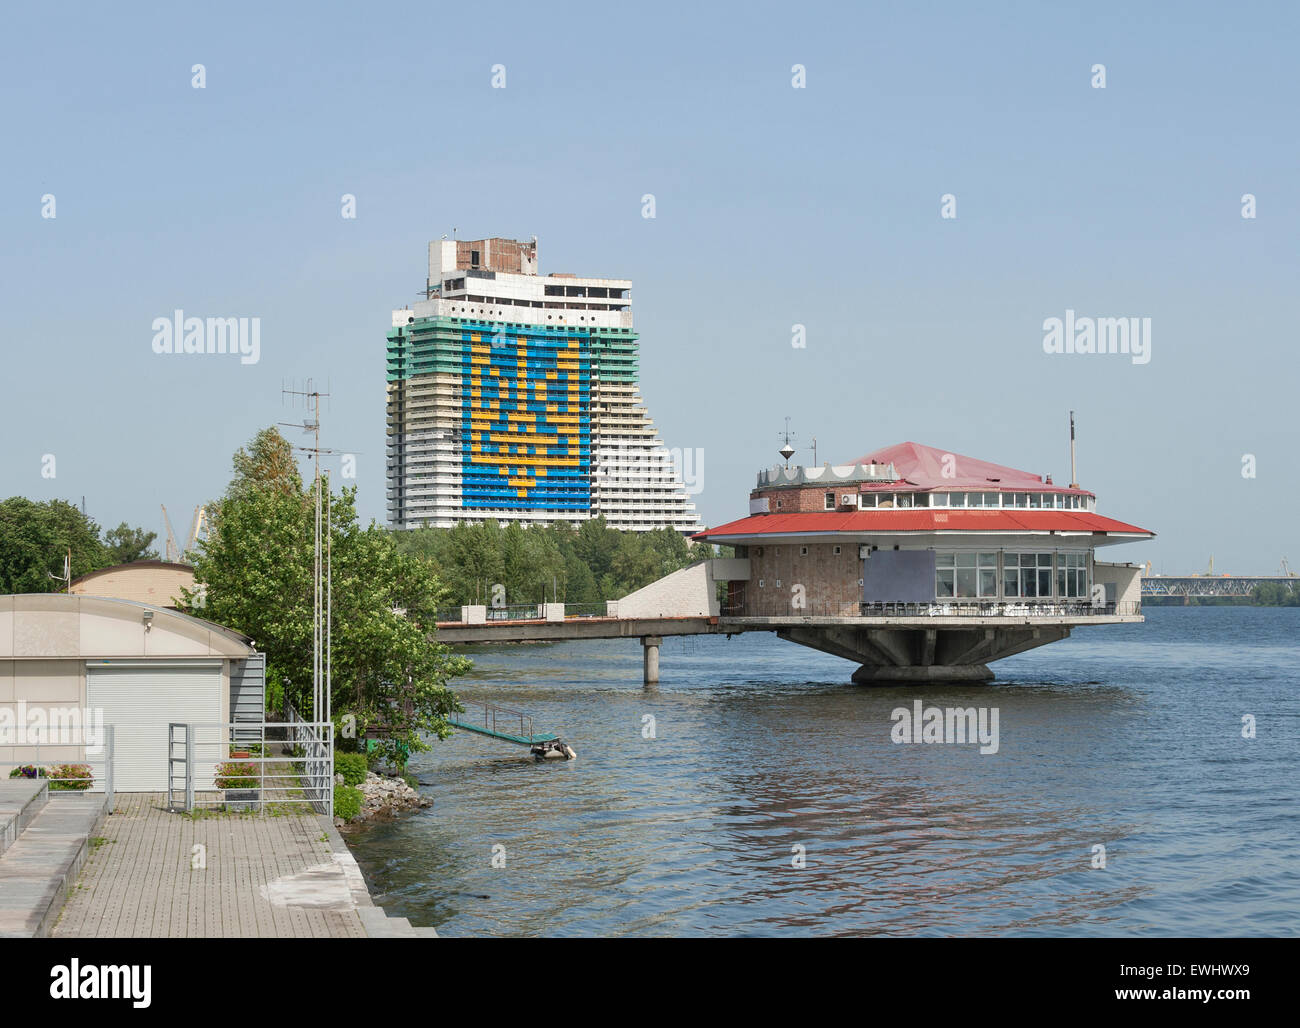 Dnipropetrovsk cityscape witn Dnieper river and coat of arms of Ukraine performed on the facade of the unfinished - Stock Image